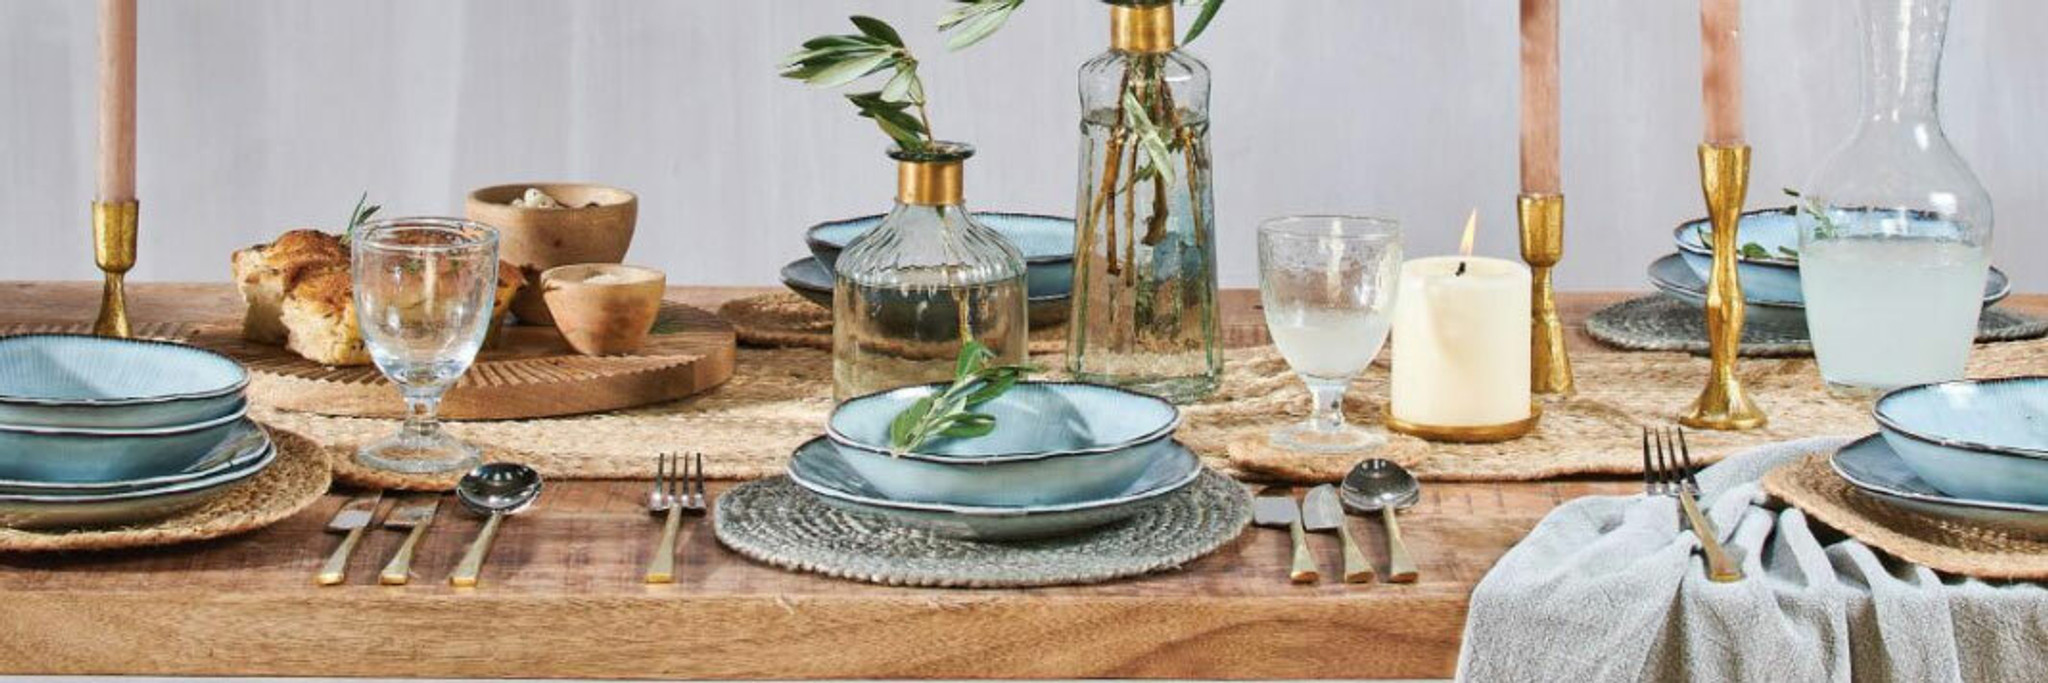 Home Decor - New Arrivals